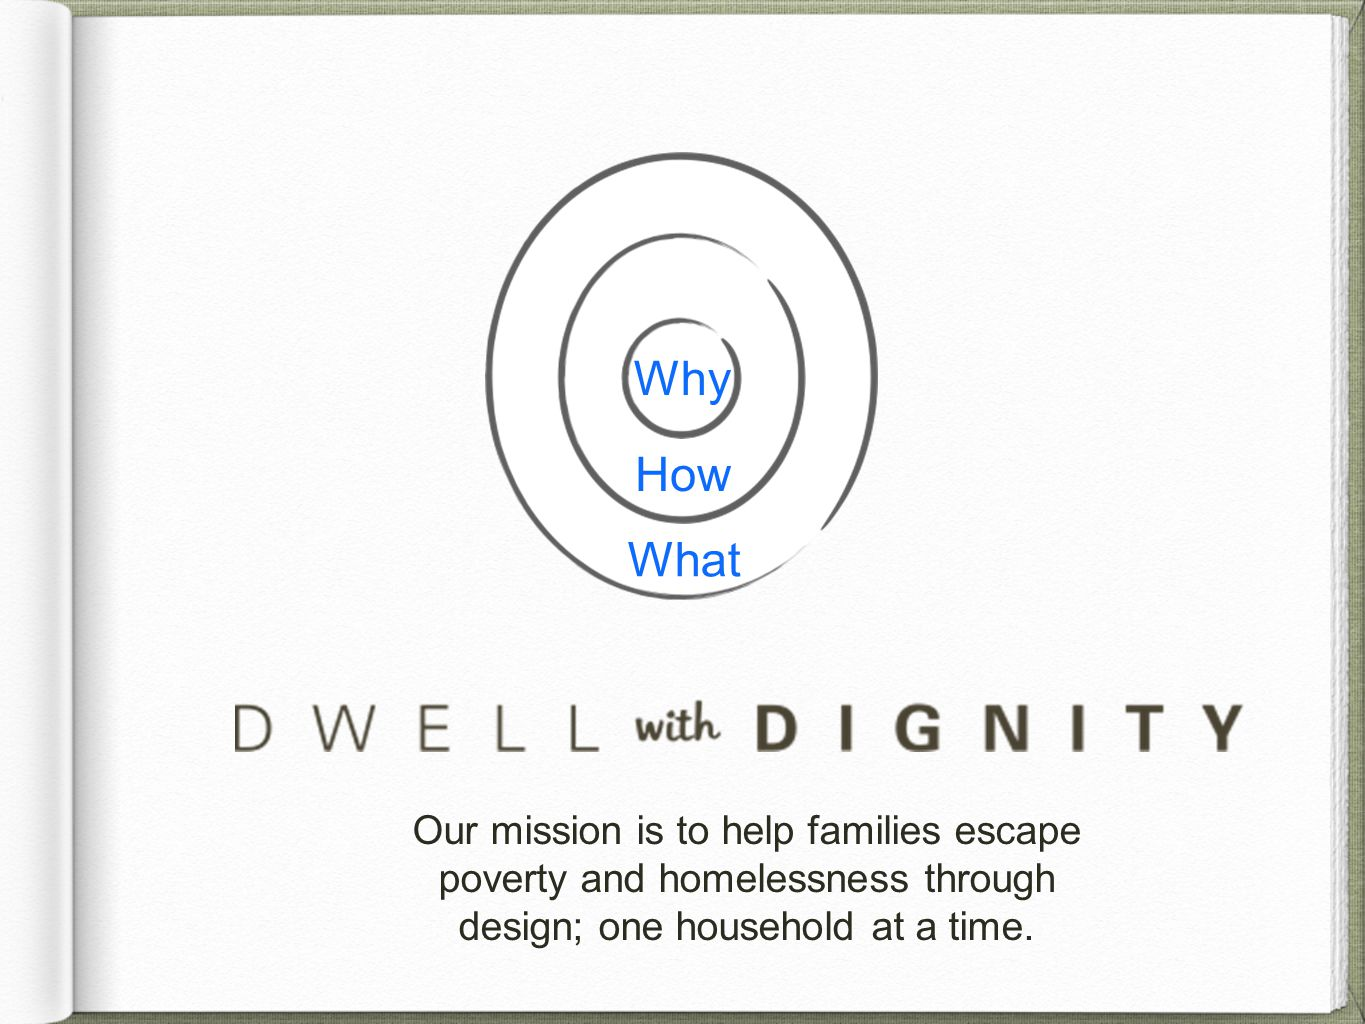 Why How What Our mission is to help families escape poverty and homelessness through design; one household at a time.